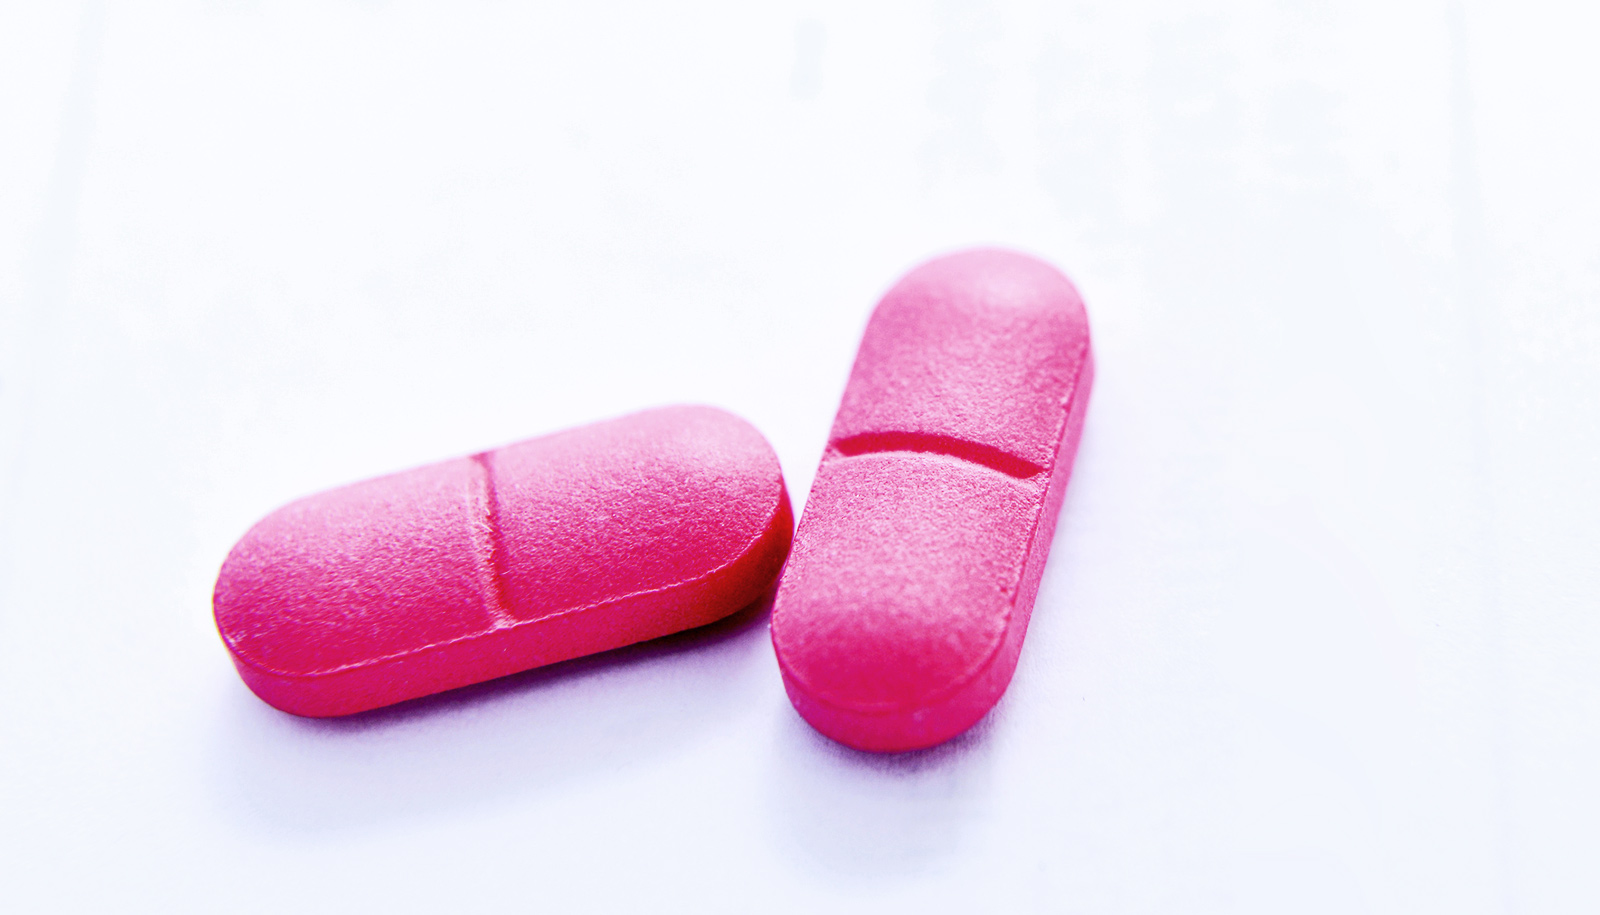 Not all gut bacteria bounce back after antibiotics